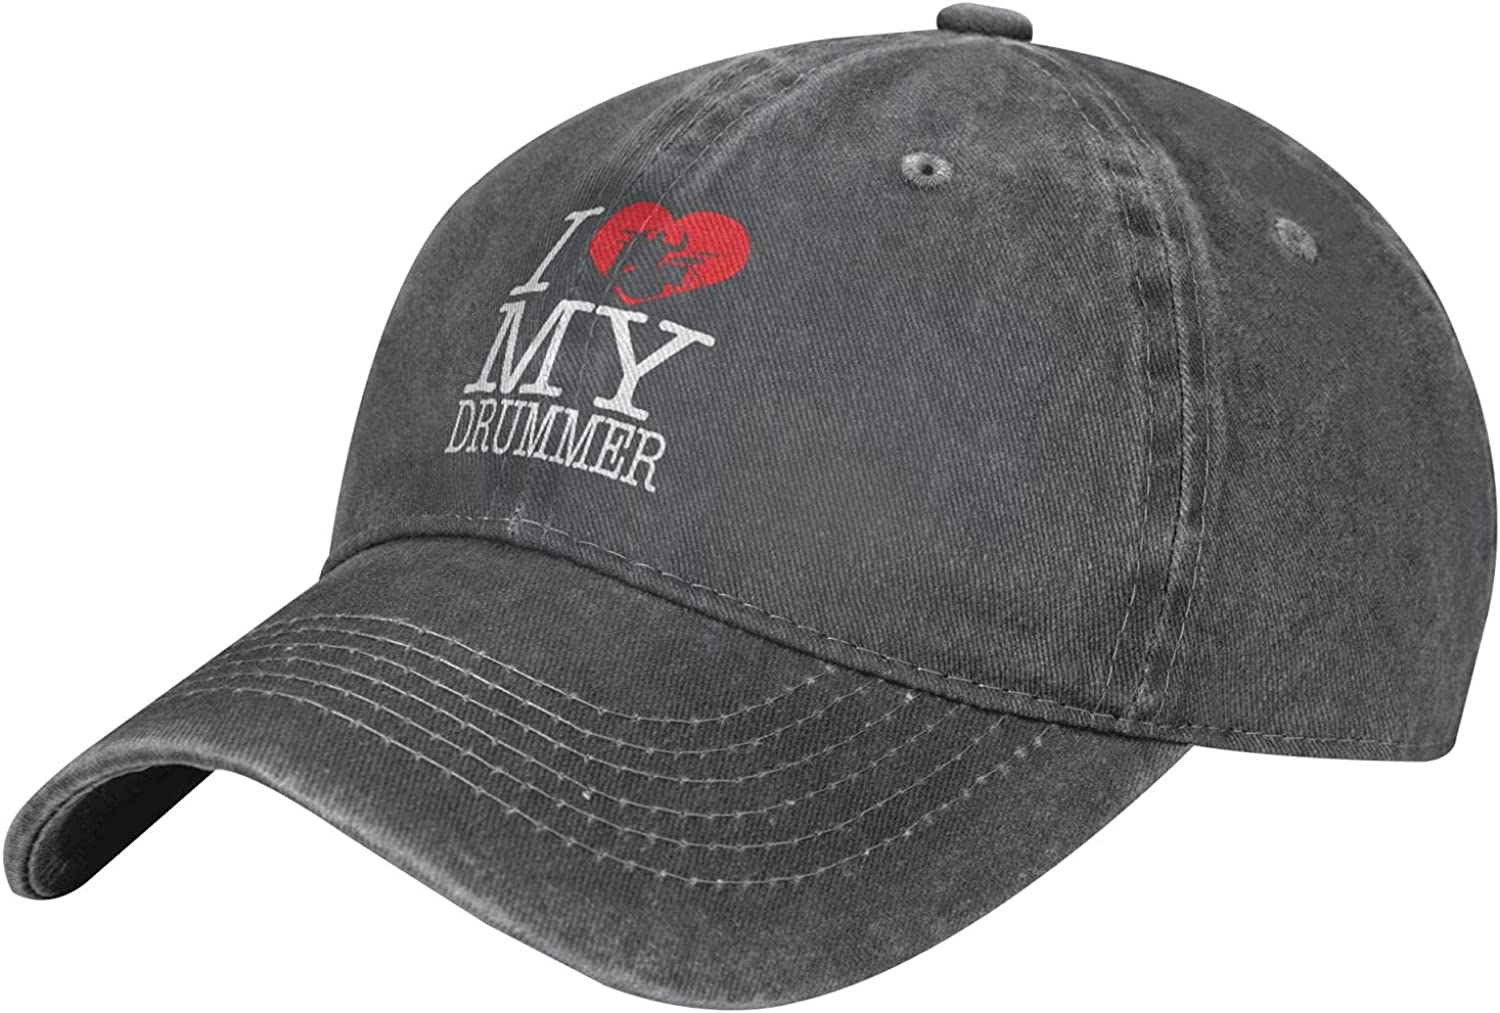 I Love NEW My Drummer Kids Baseball Cap Distressed-Washed Outlet ☆ Free Shipping Adjustable